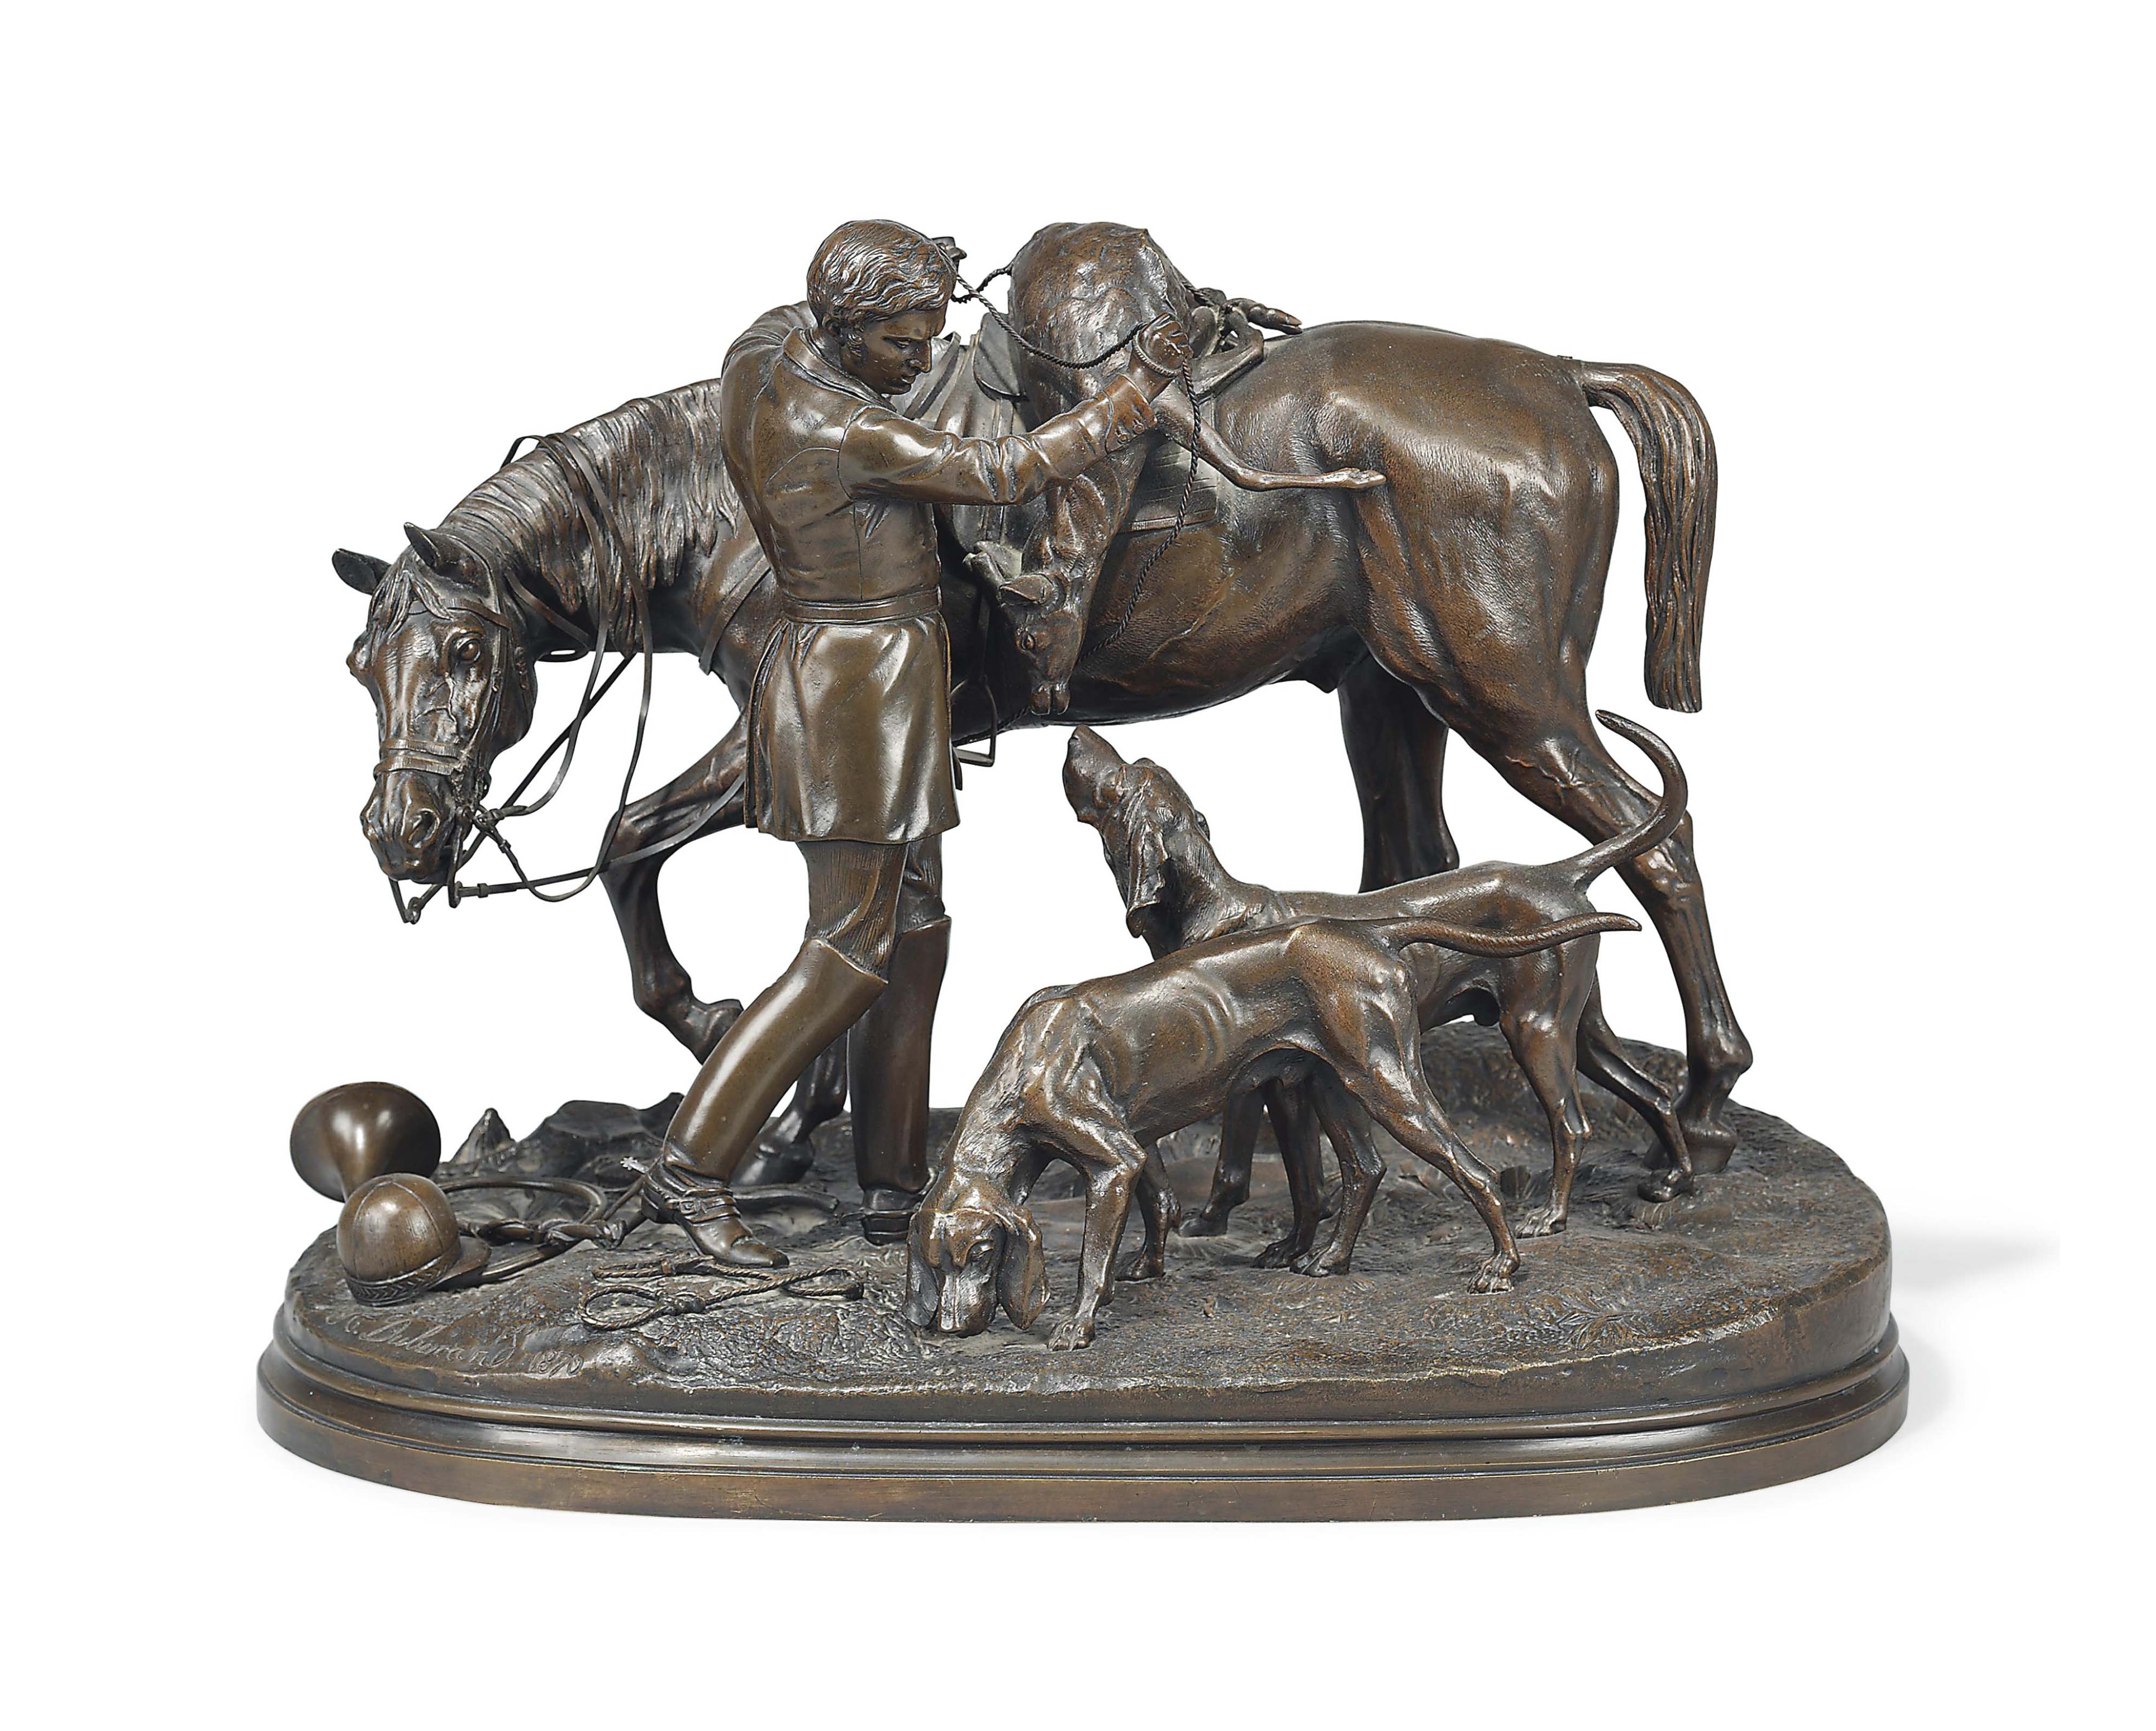 A LARGE FRENCH BRONZE EQUESTRIAN GROUP OF A YOUNG HUNTSMAN AND HOUNDS, ENTITLED 'LE RETOUR DE LA CHASSE A COURRE'